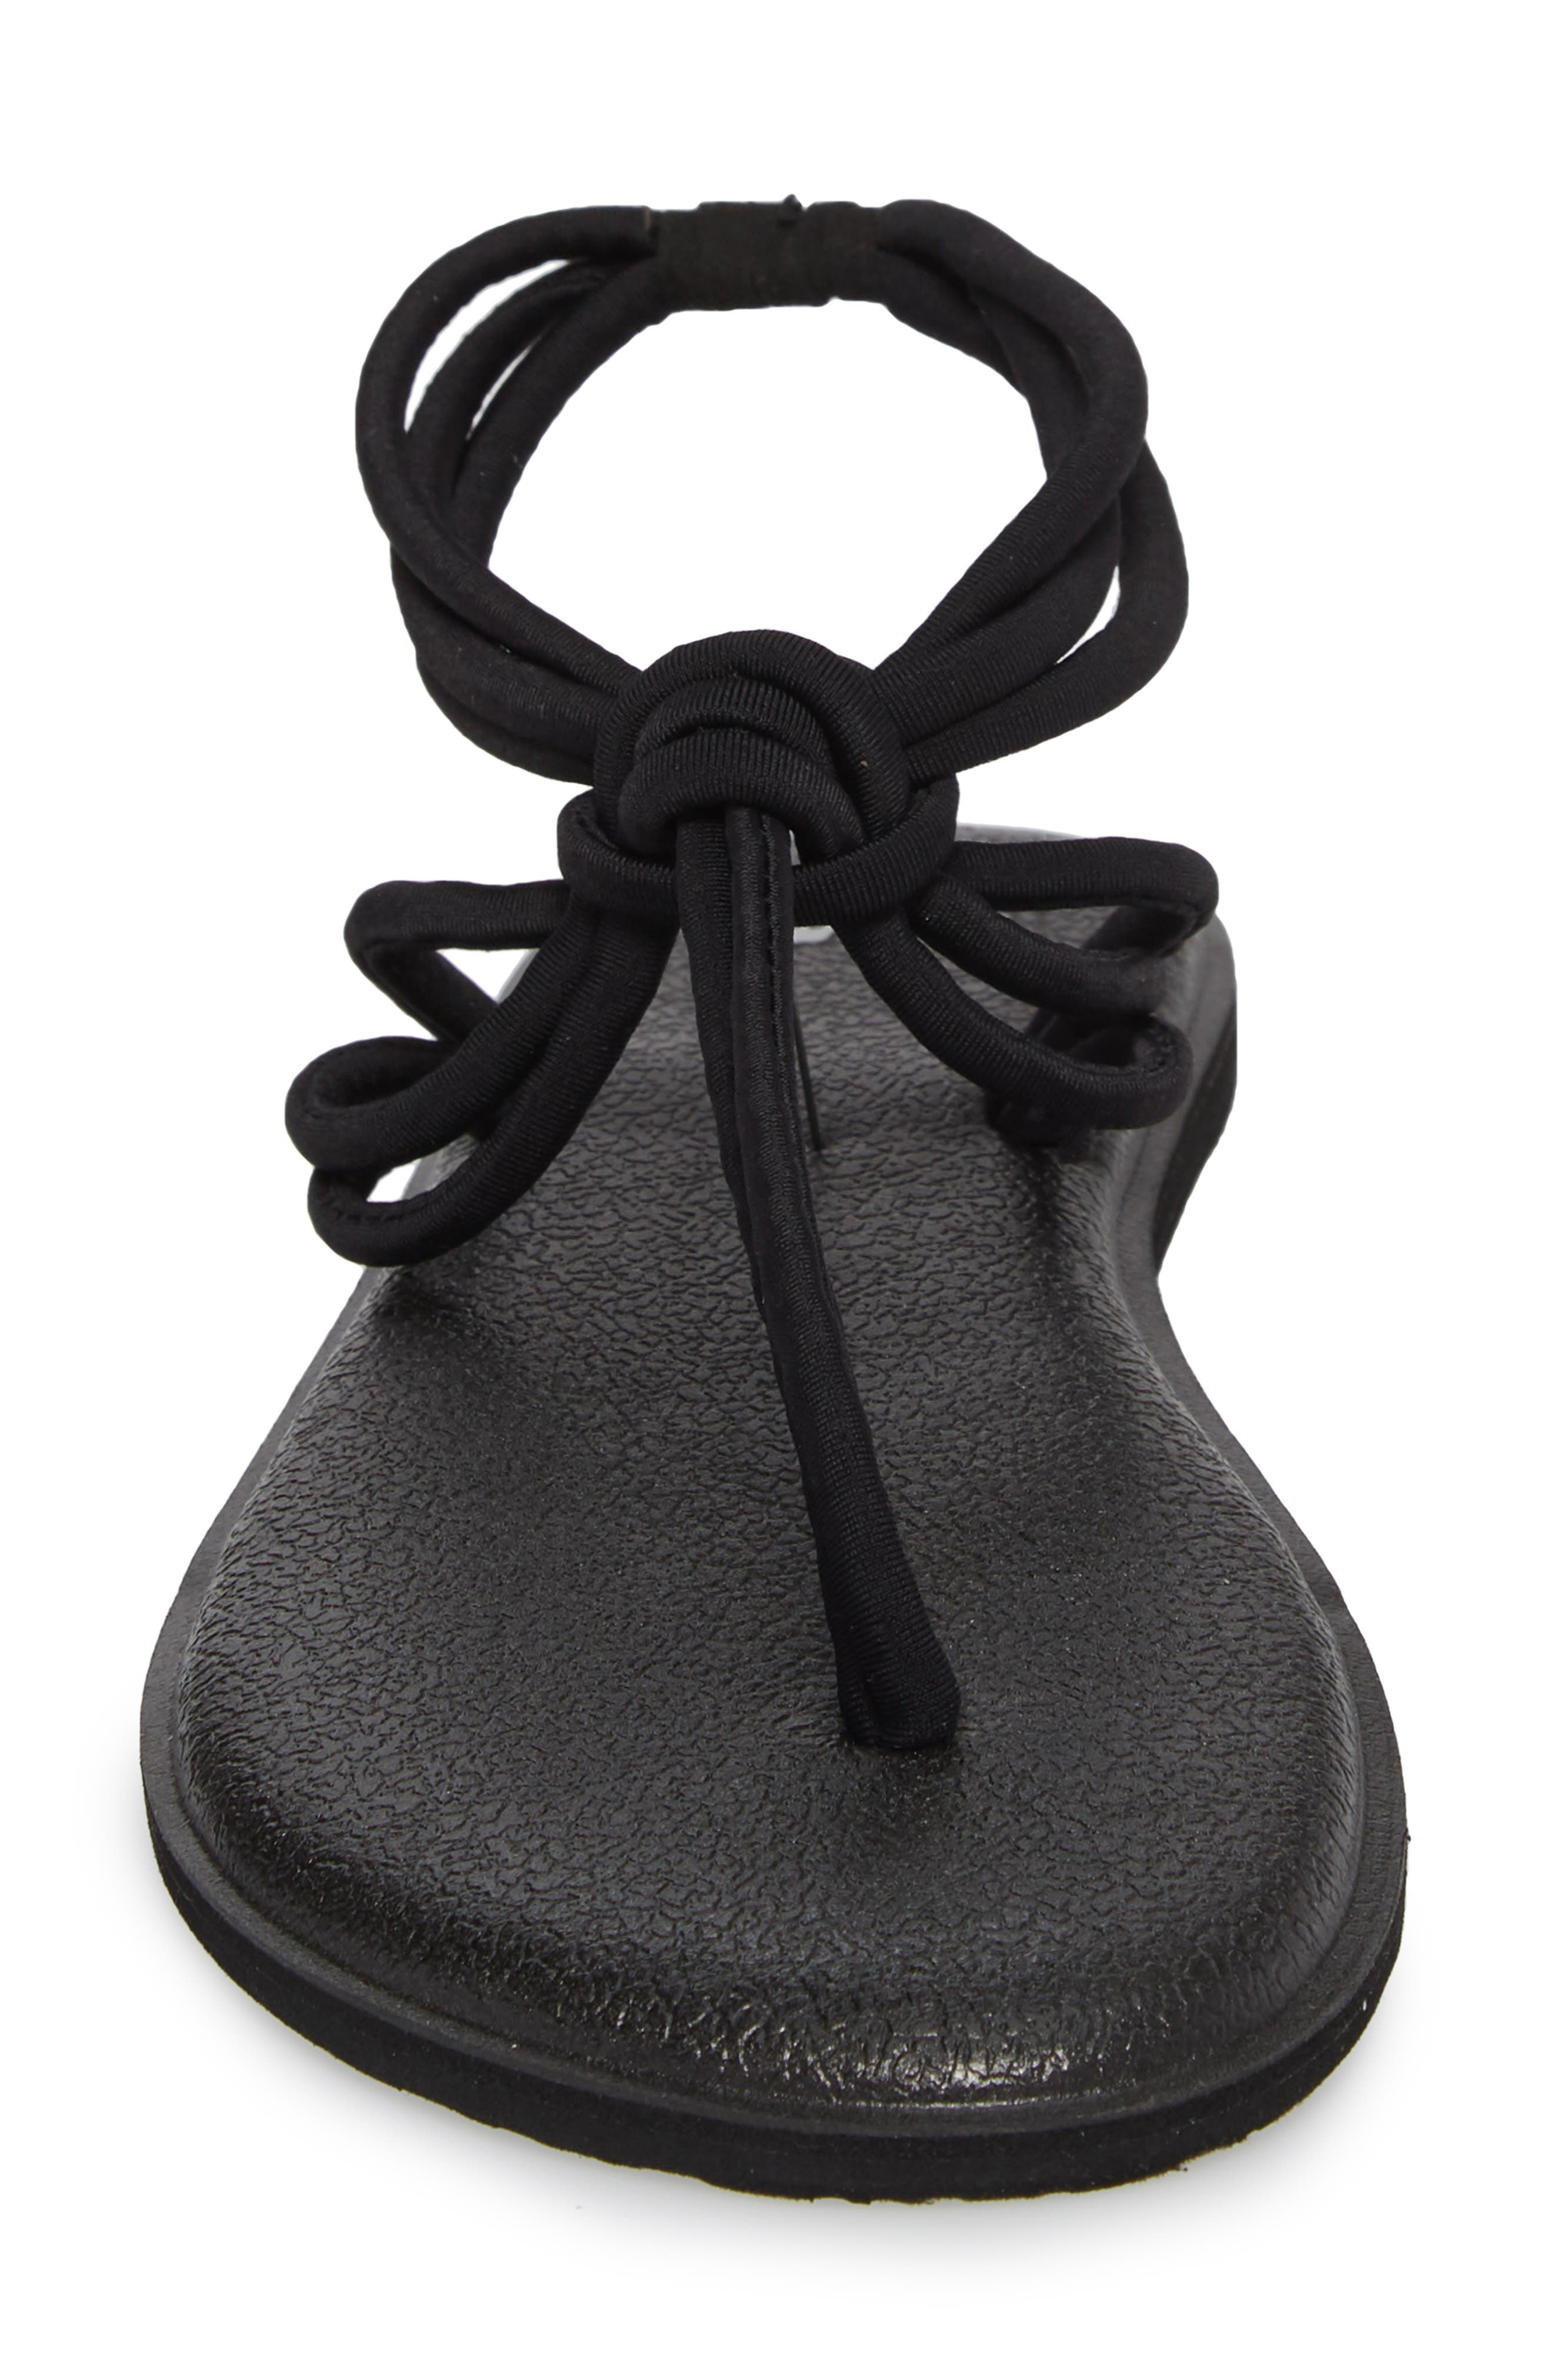 Yoga Sunshine Knotted Thong Sandal,                             Alternate thumbnail 4, color,                             Black